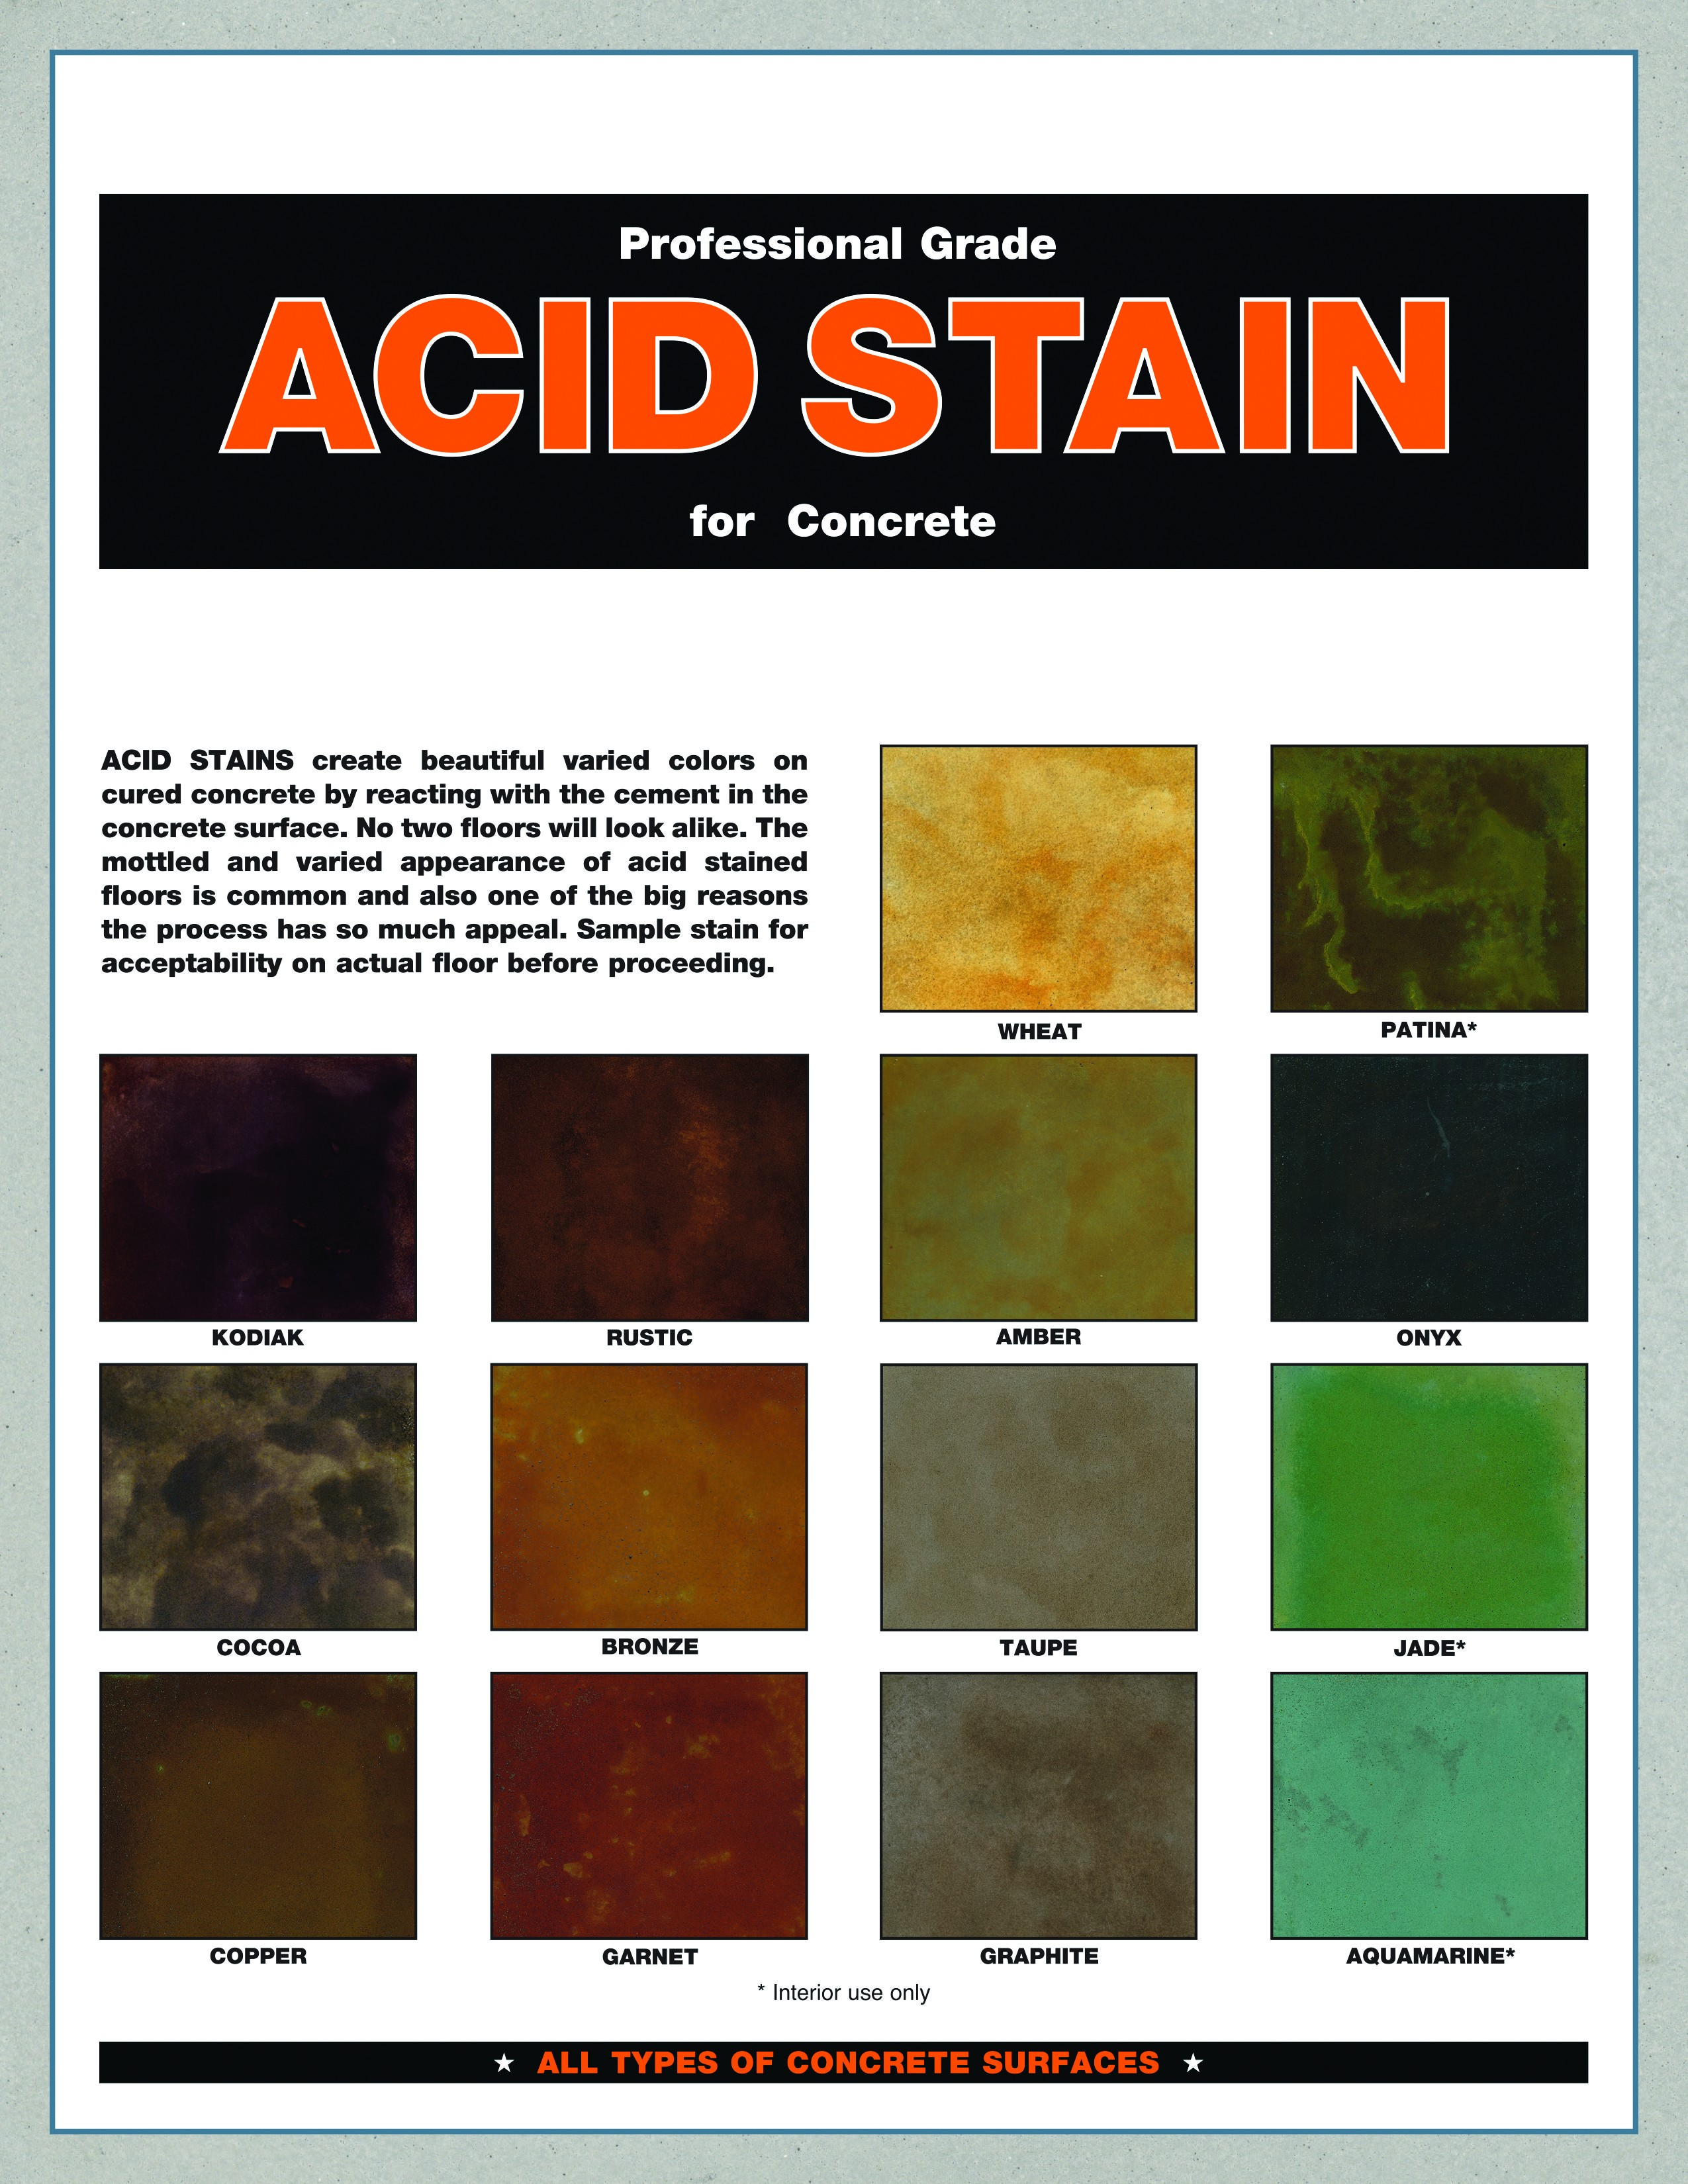 https://www.vseal.com/media/catalog/product/cache/1/image/9df78eab33525d08d6e5fb8d27136e95/a/c/acid_stain_-_tds_color_chart-1.jpg